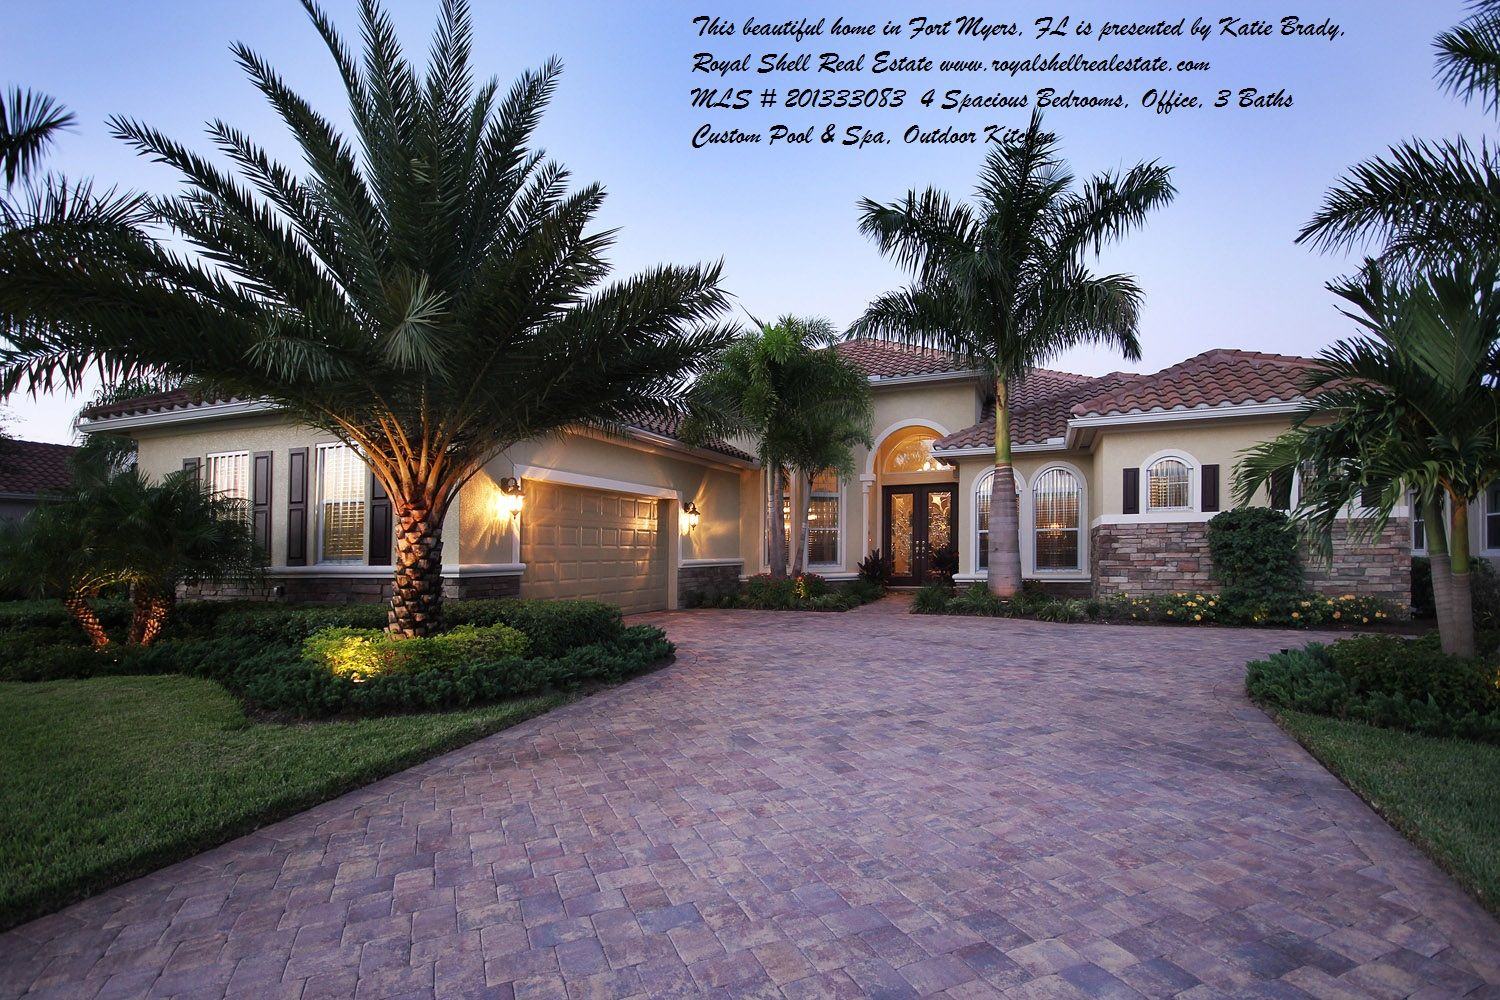 This beautiful home in Fort Myers, FL offers 4 Bedrooms